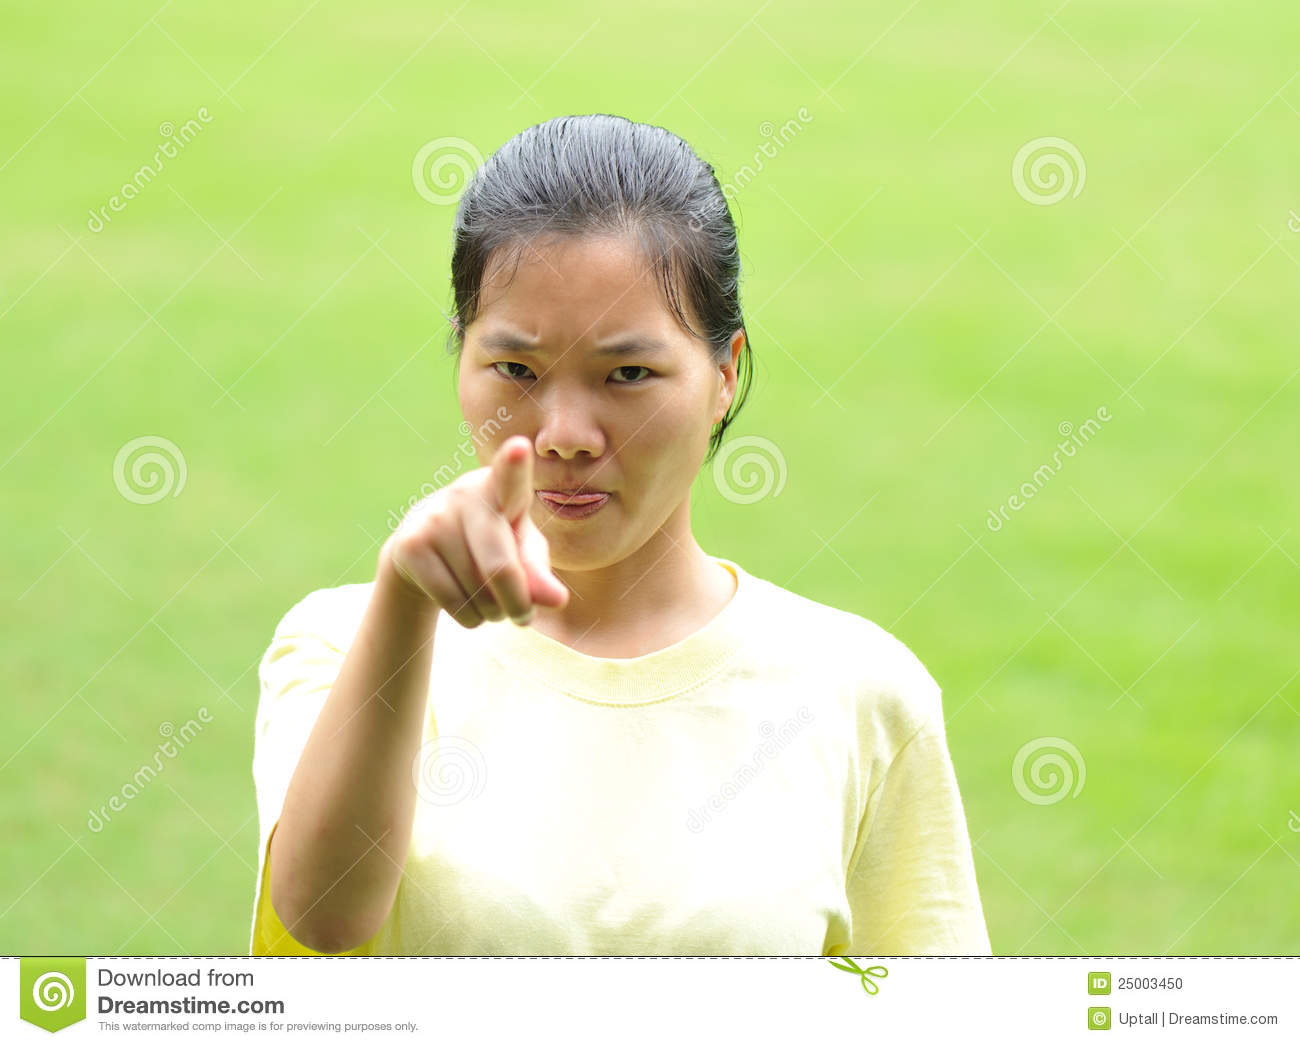 Stock Photo Angry Asian Woman Image 25003450